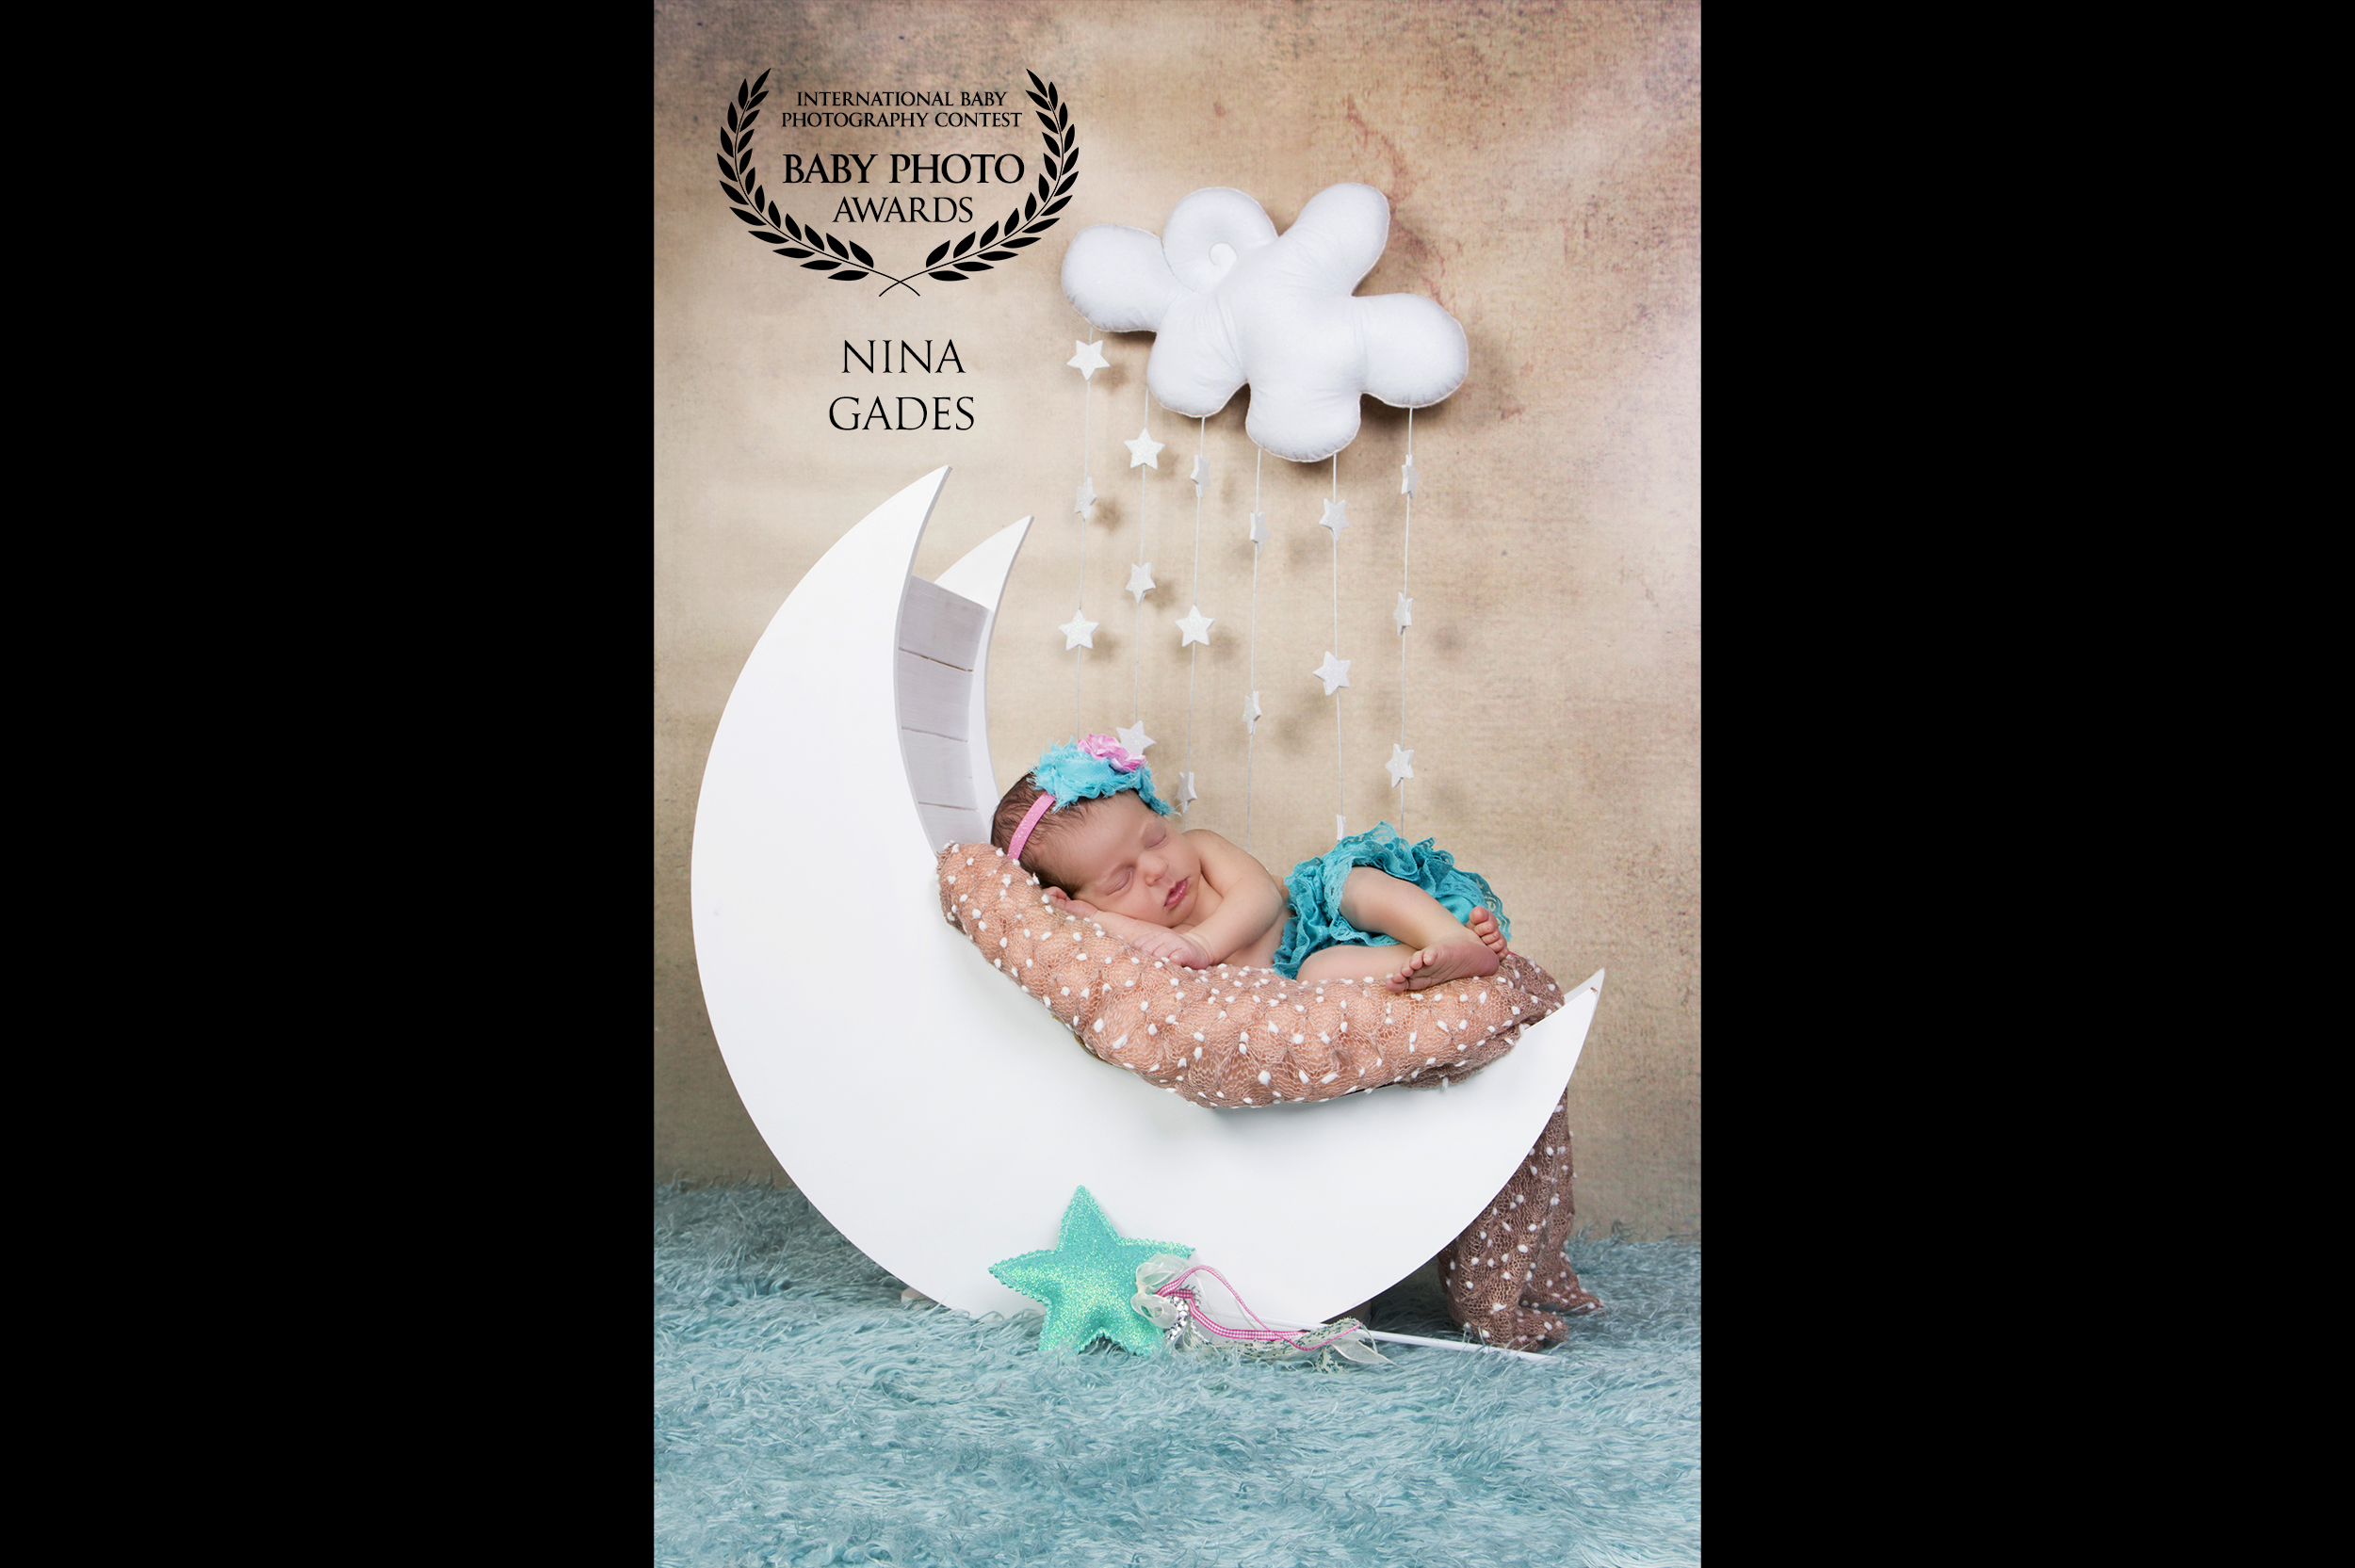 baby photo awards nina gades